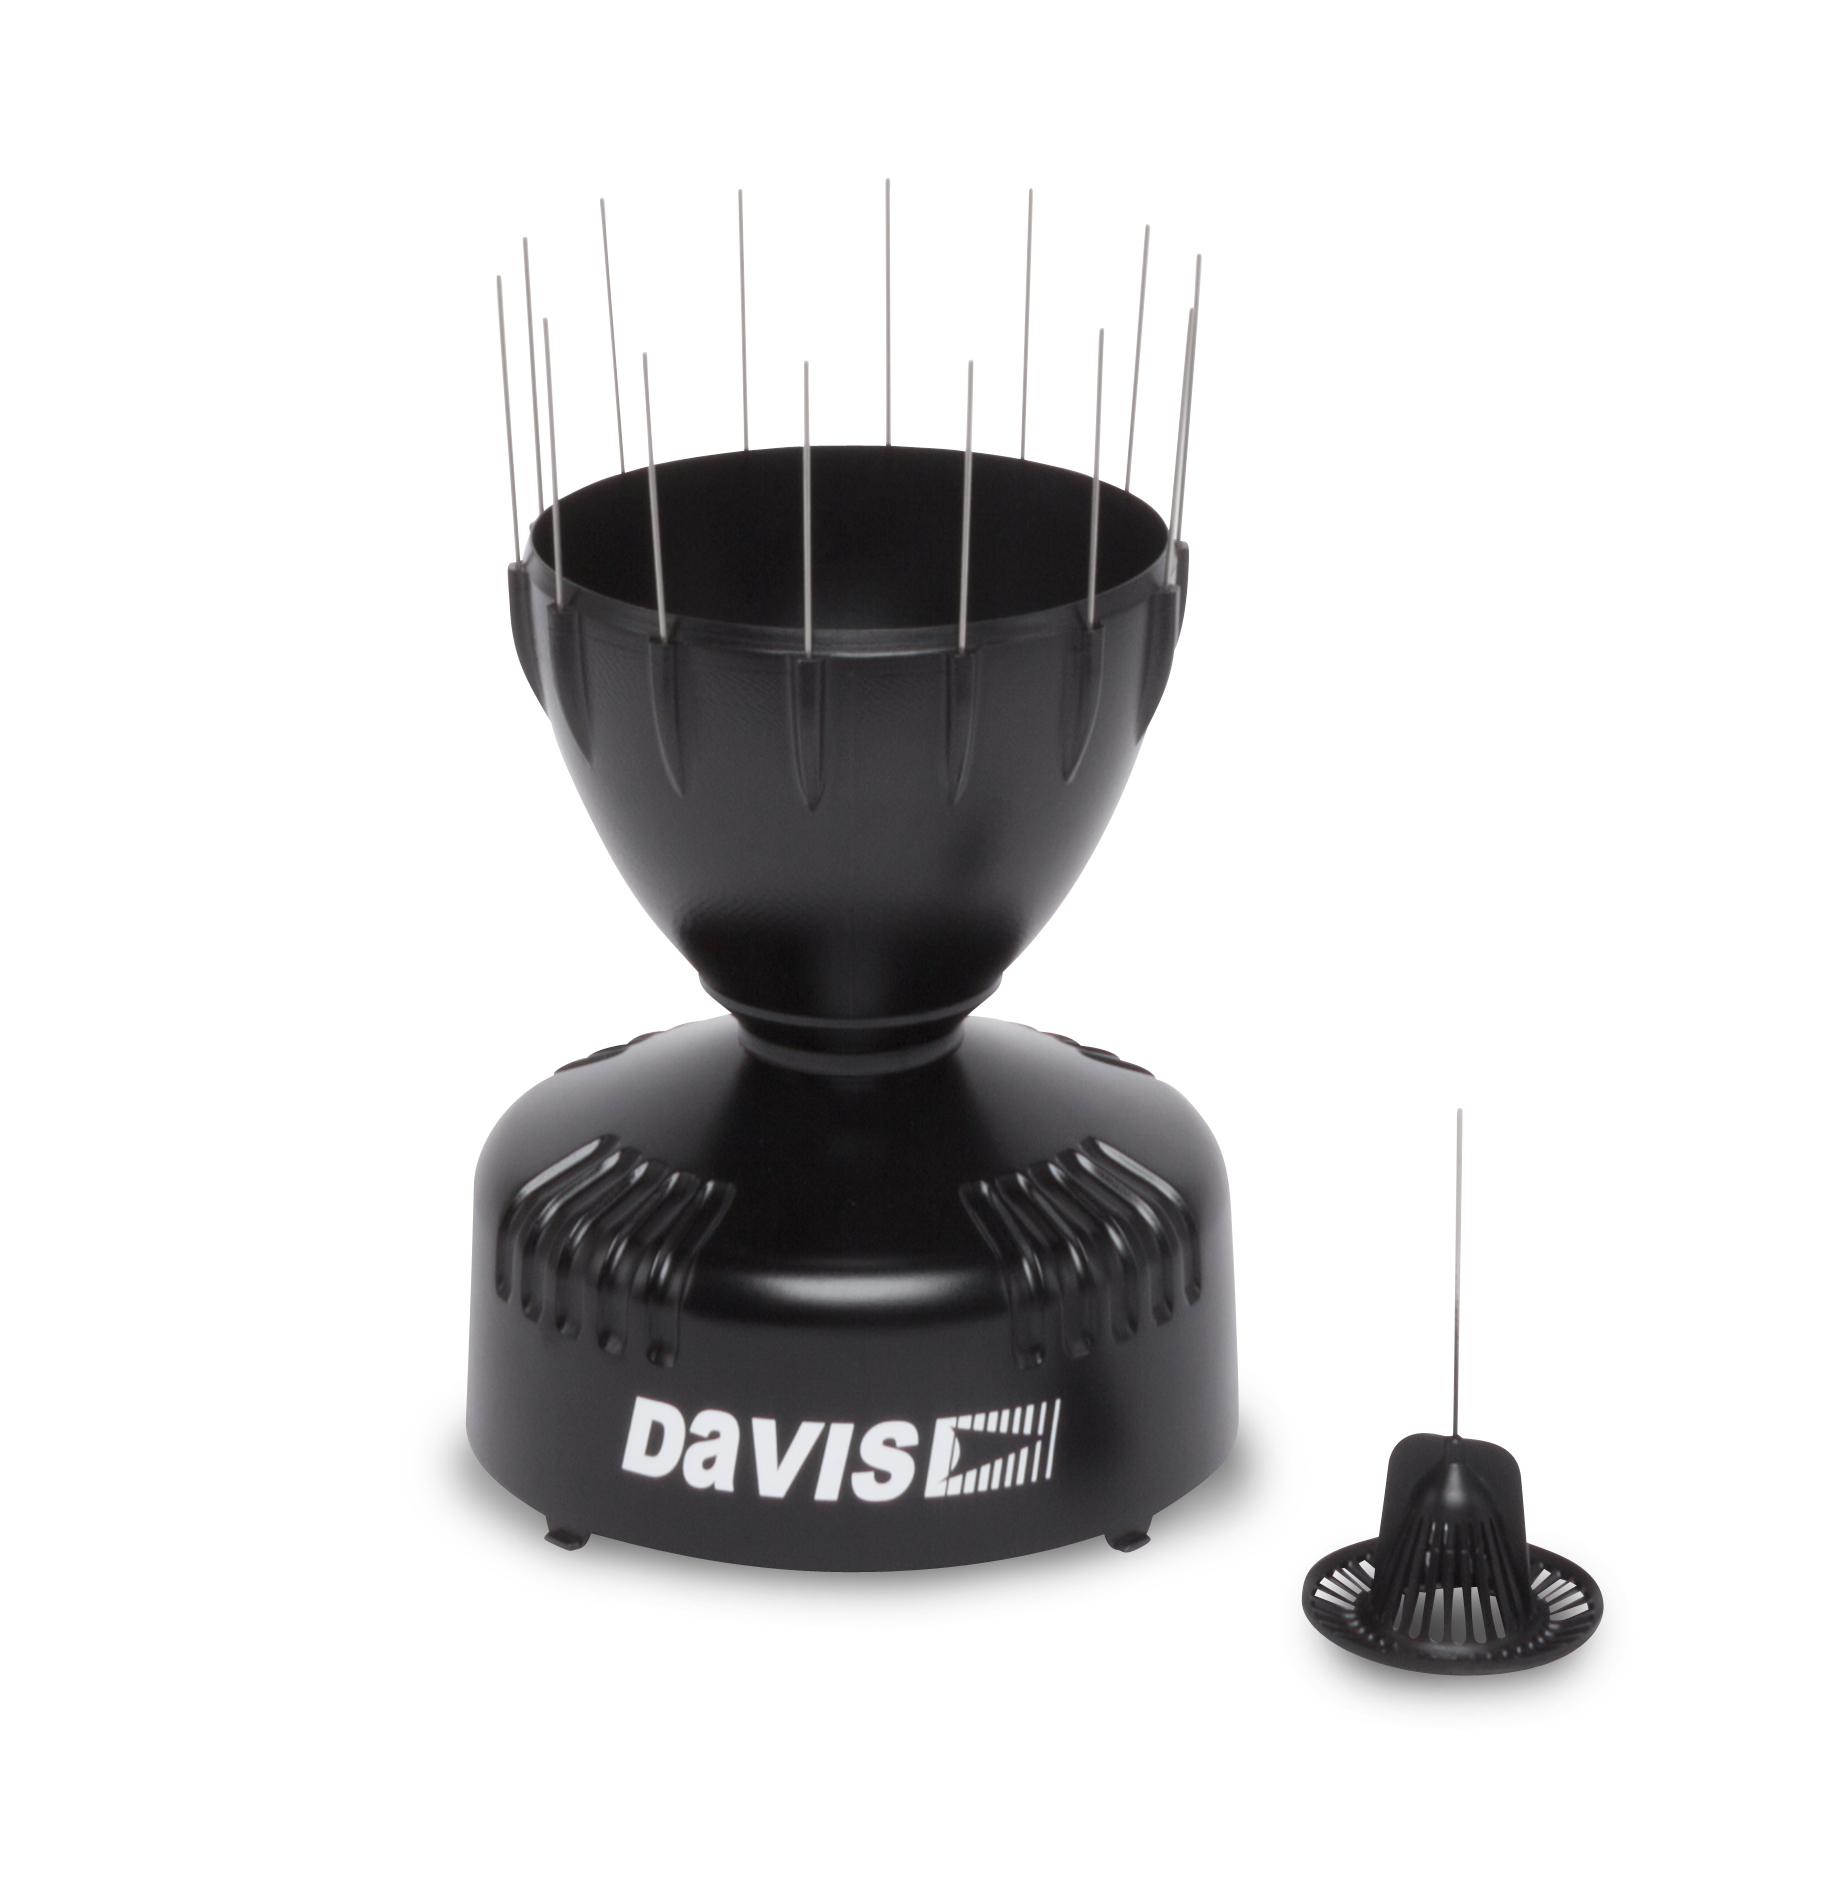 Davis 6162 VP2 Vantage Pro 2 Plus professional weerstation